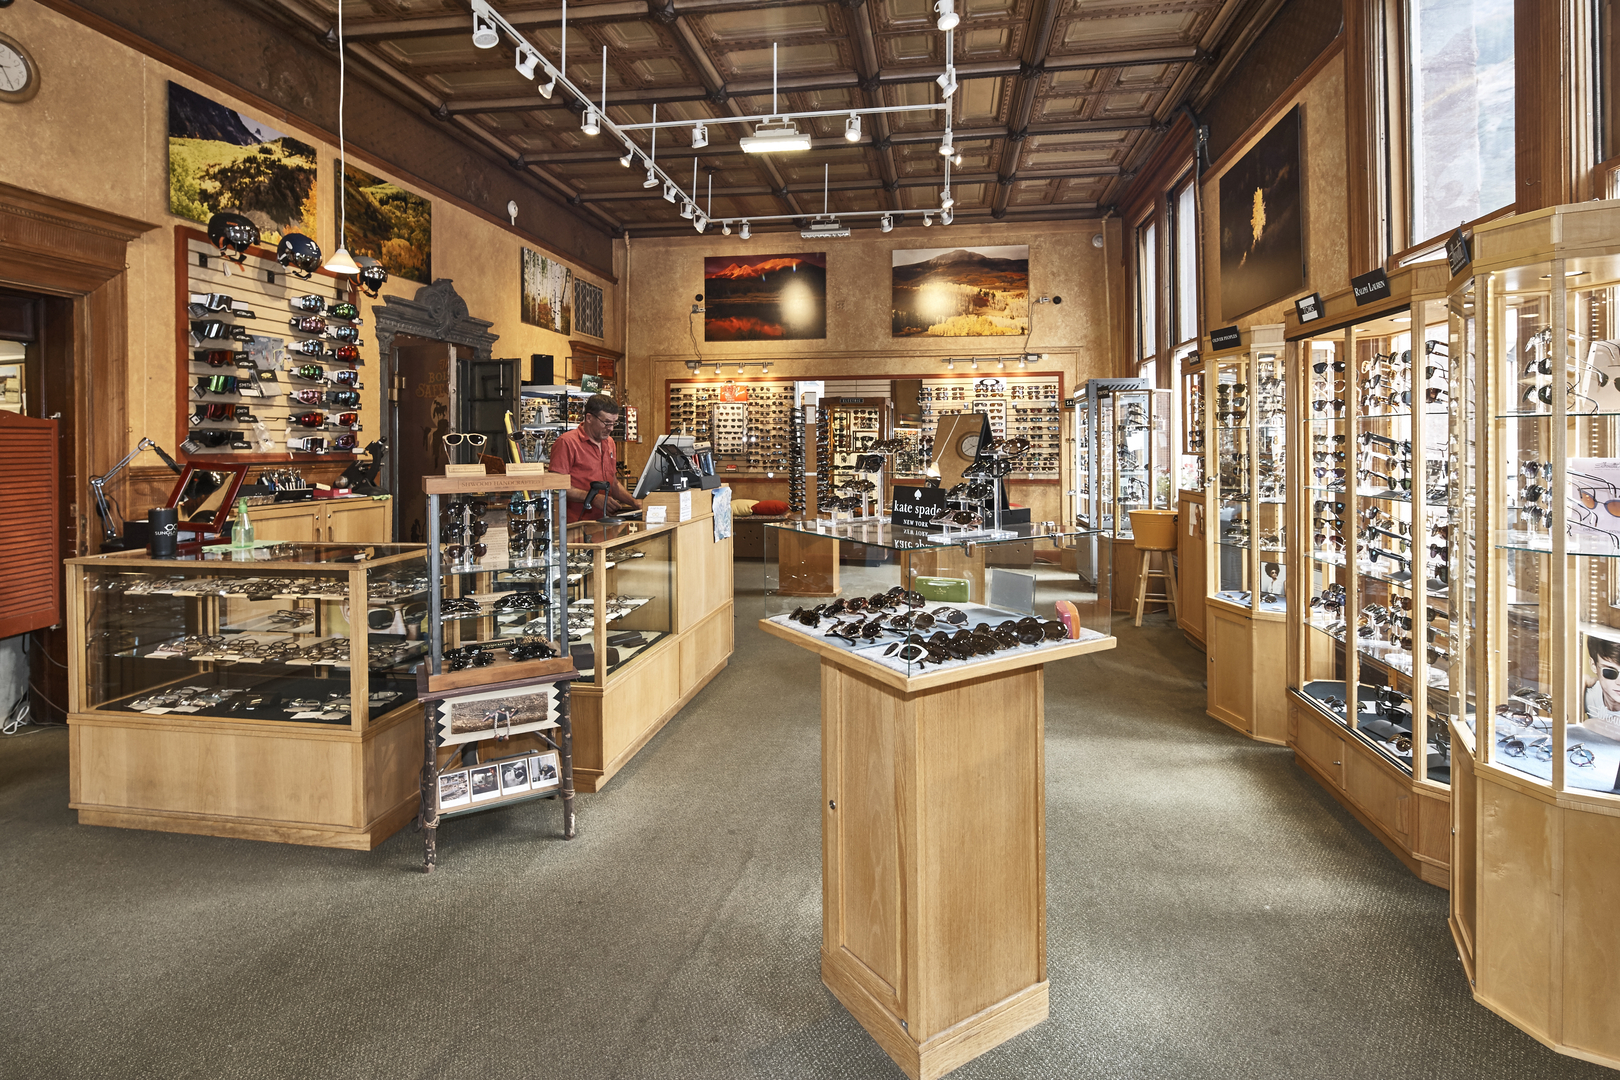 1962712ce8a2 Welcome to Sunglass HQ   Optical in Telluride Colorado. We are a sunglass  and optical specialty store located at 201 W Colorado Avenue